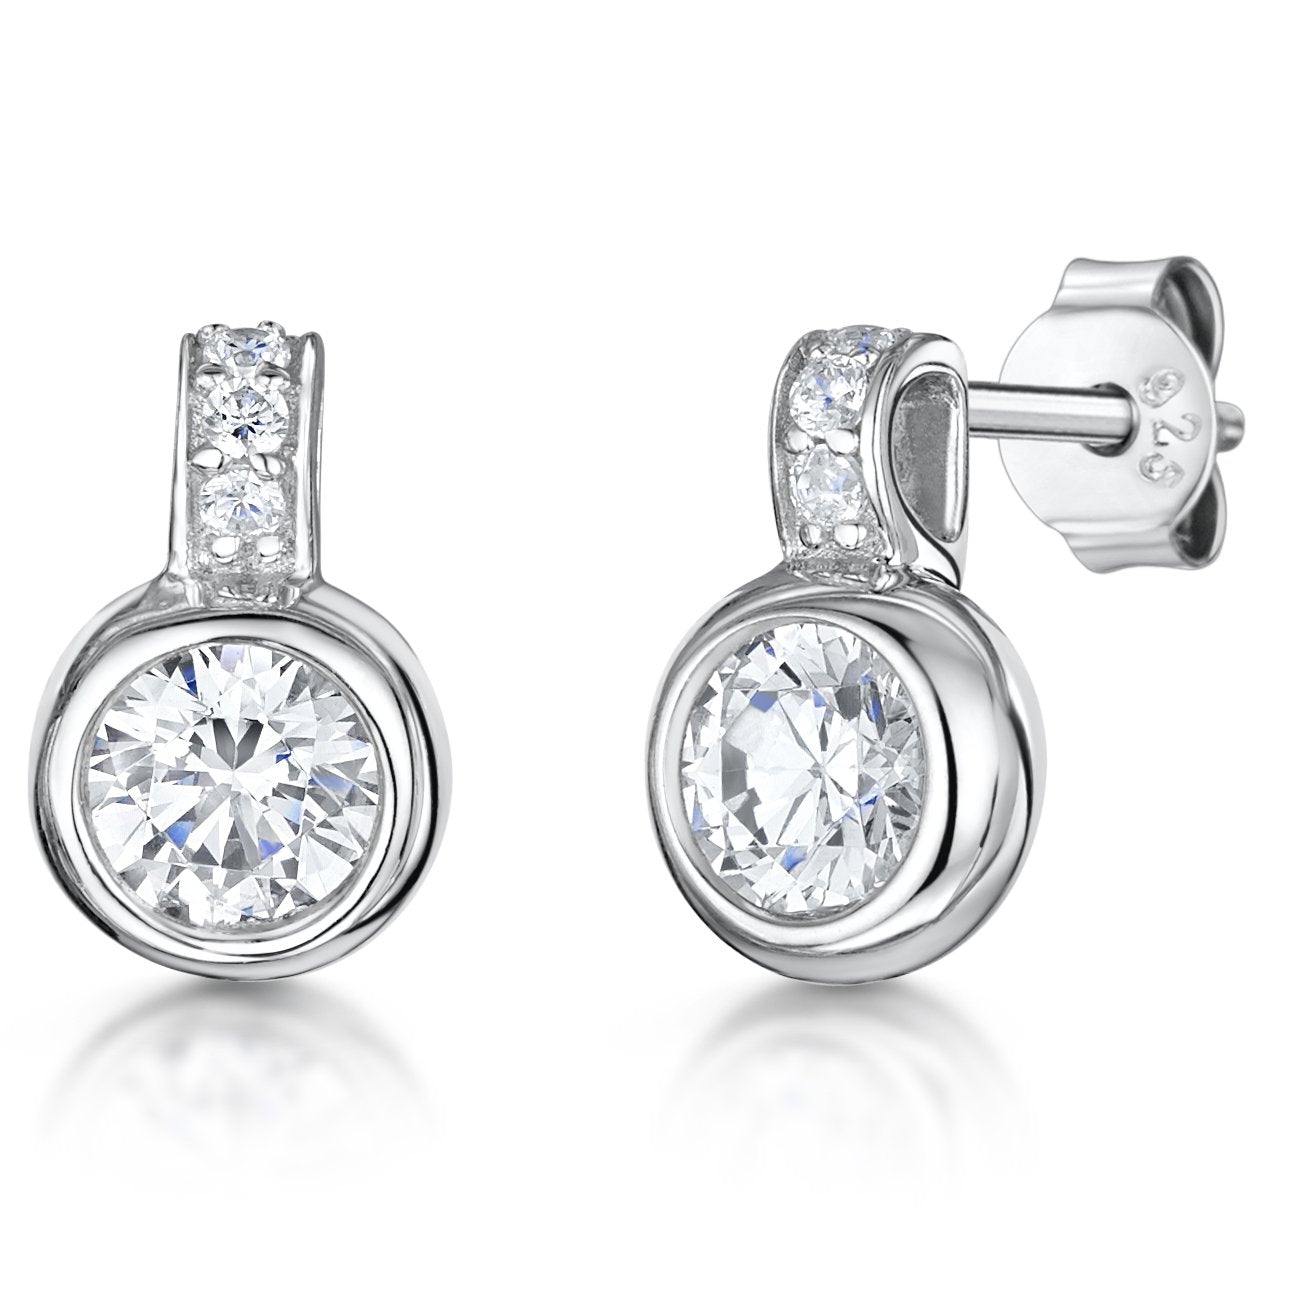 Sterling Silver Earrings Set With A Cubic Zirconia Rub Over Stones - JOOLS By Jenny Brown